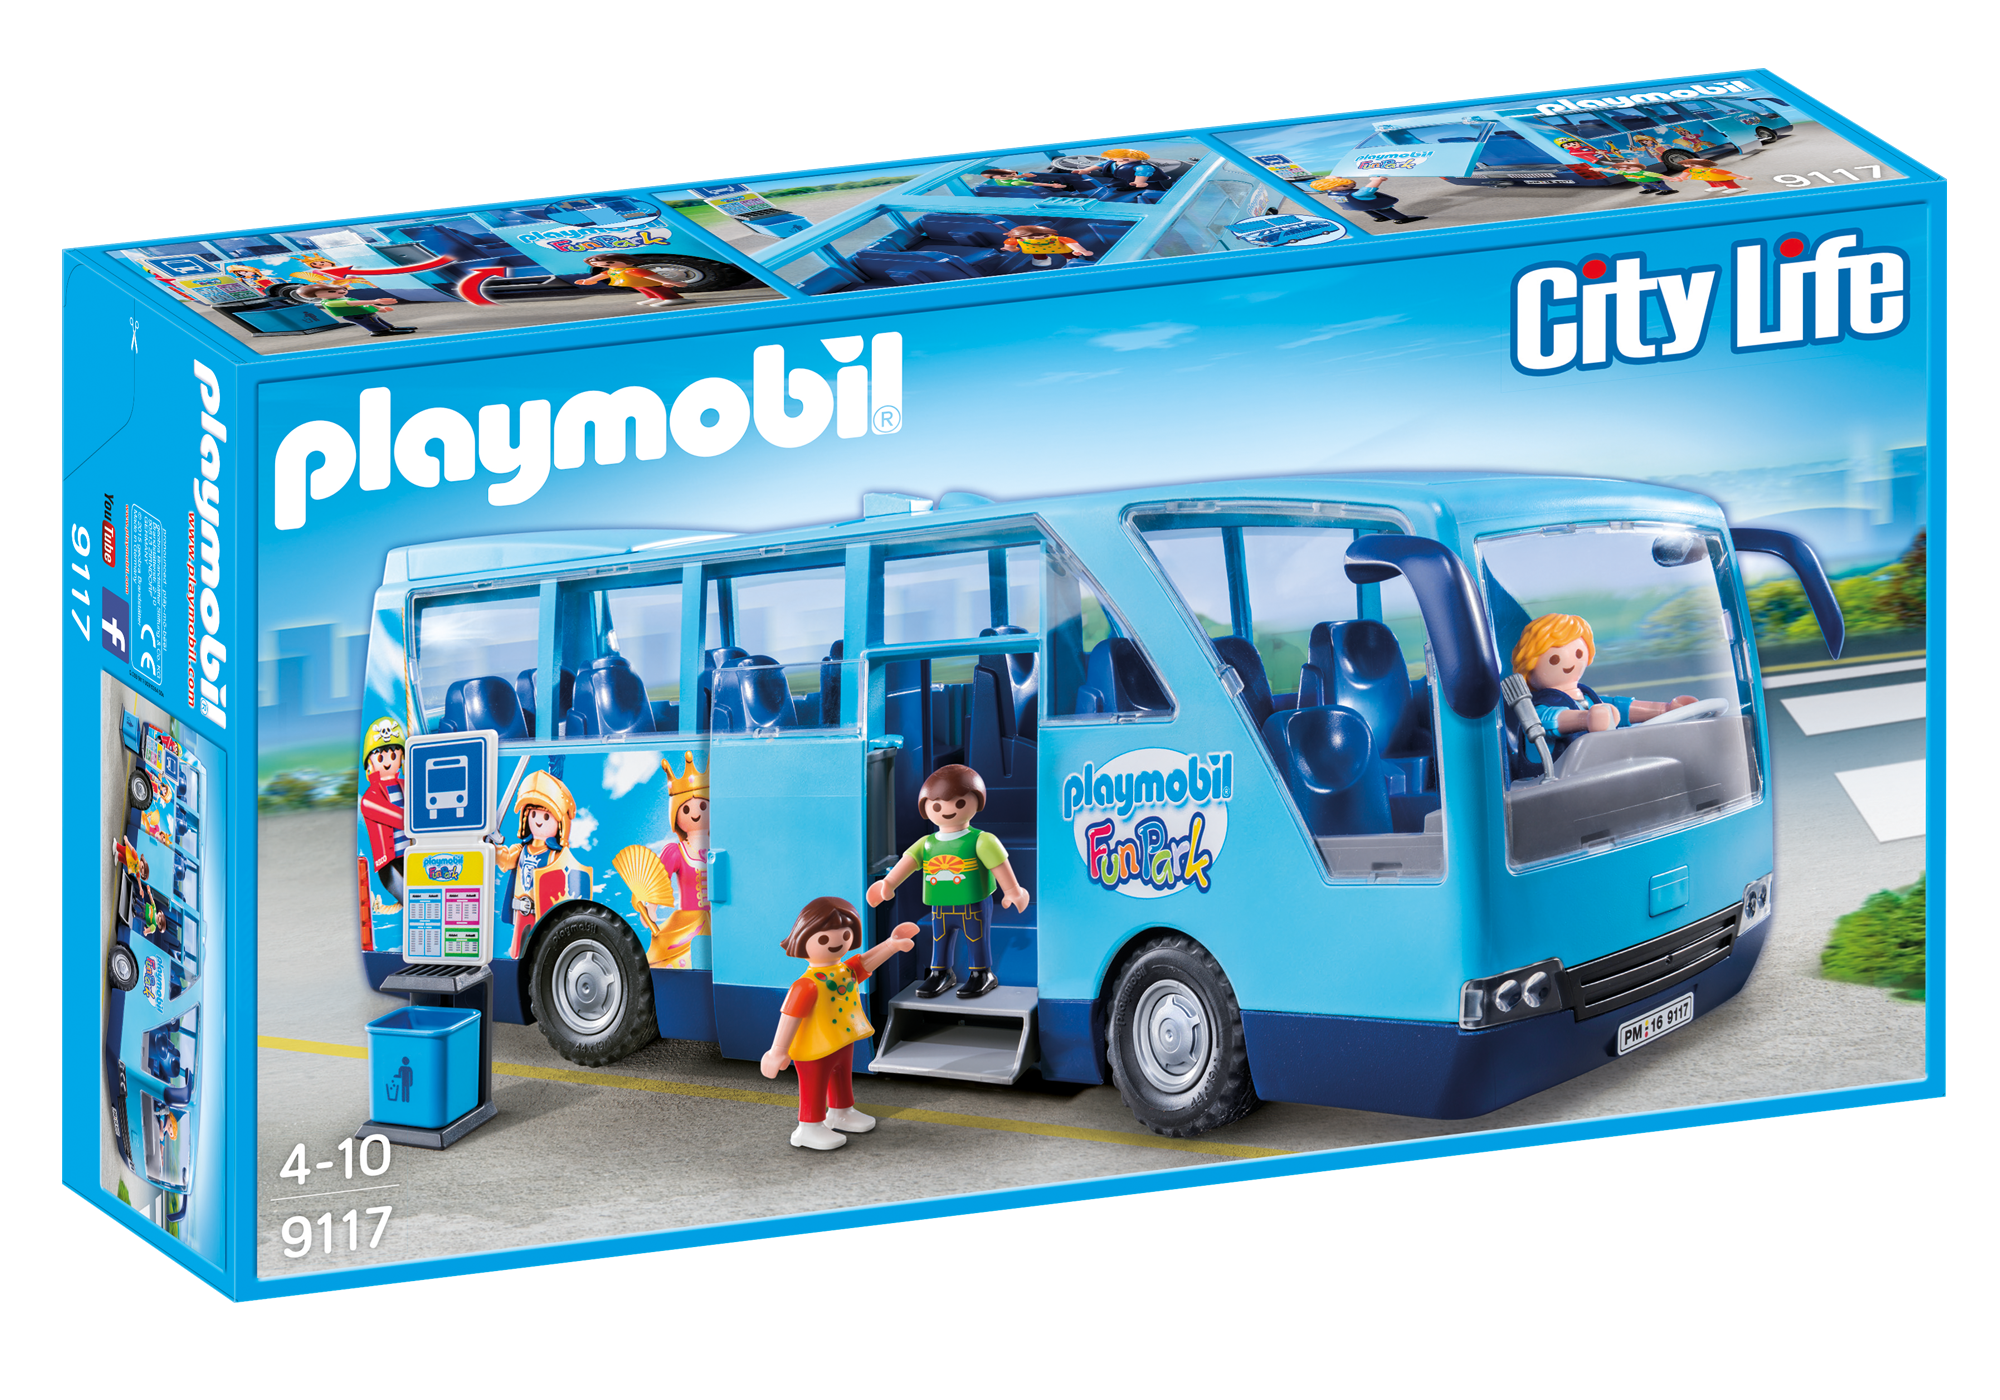 http://media.playmobil.com/i/playmobil/9117_product_box_front